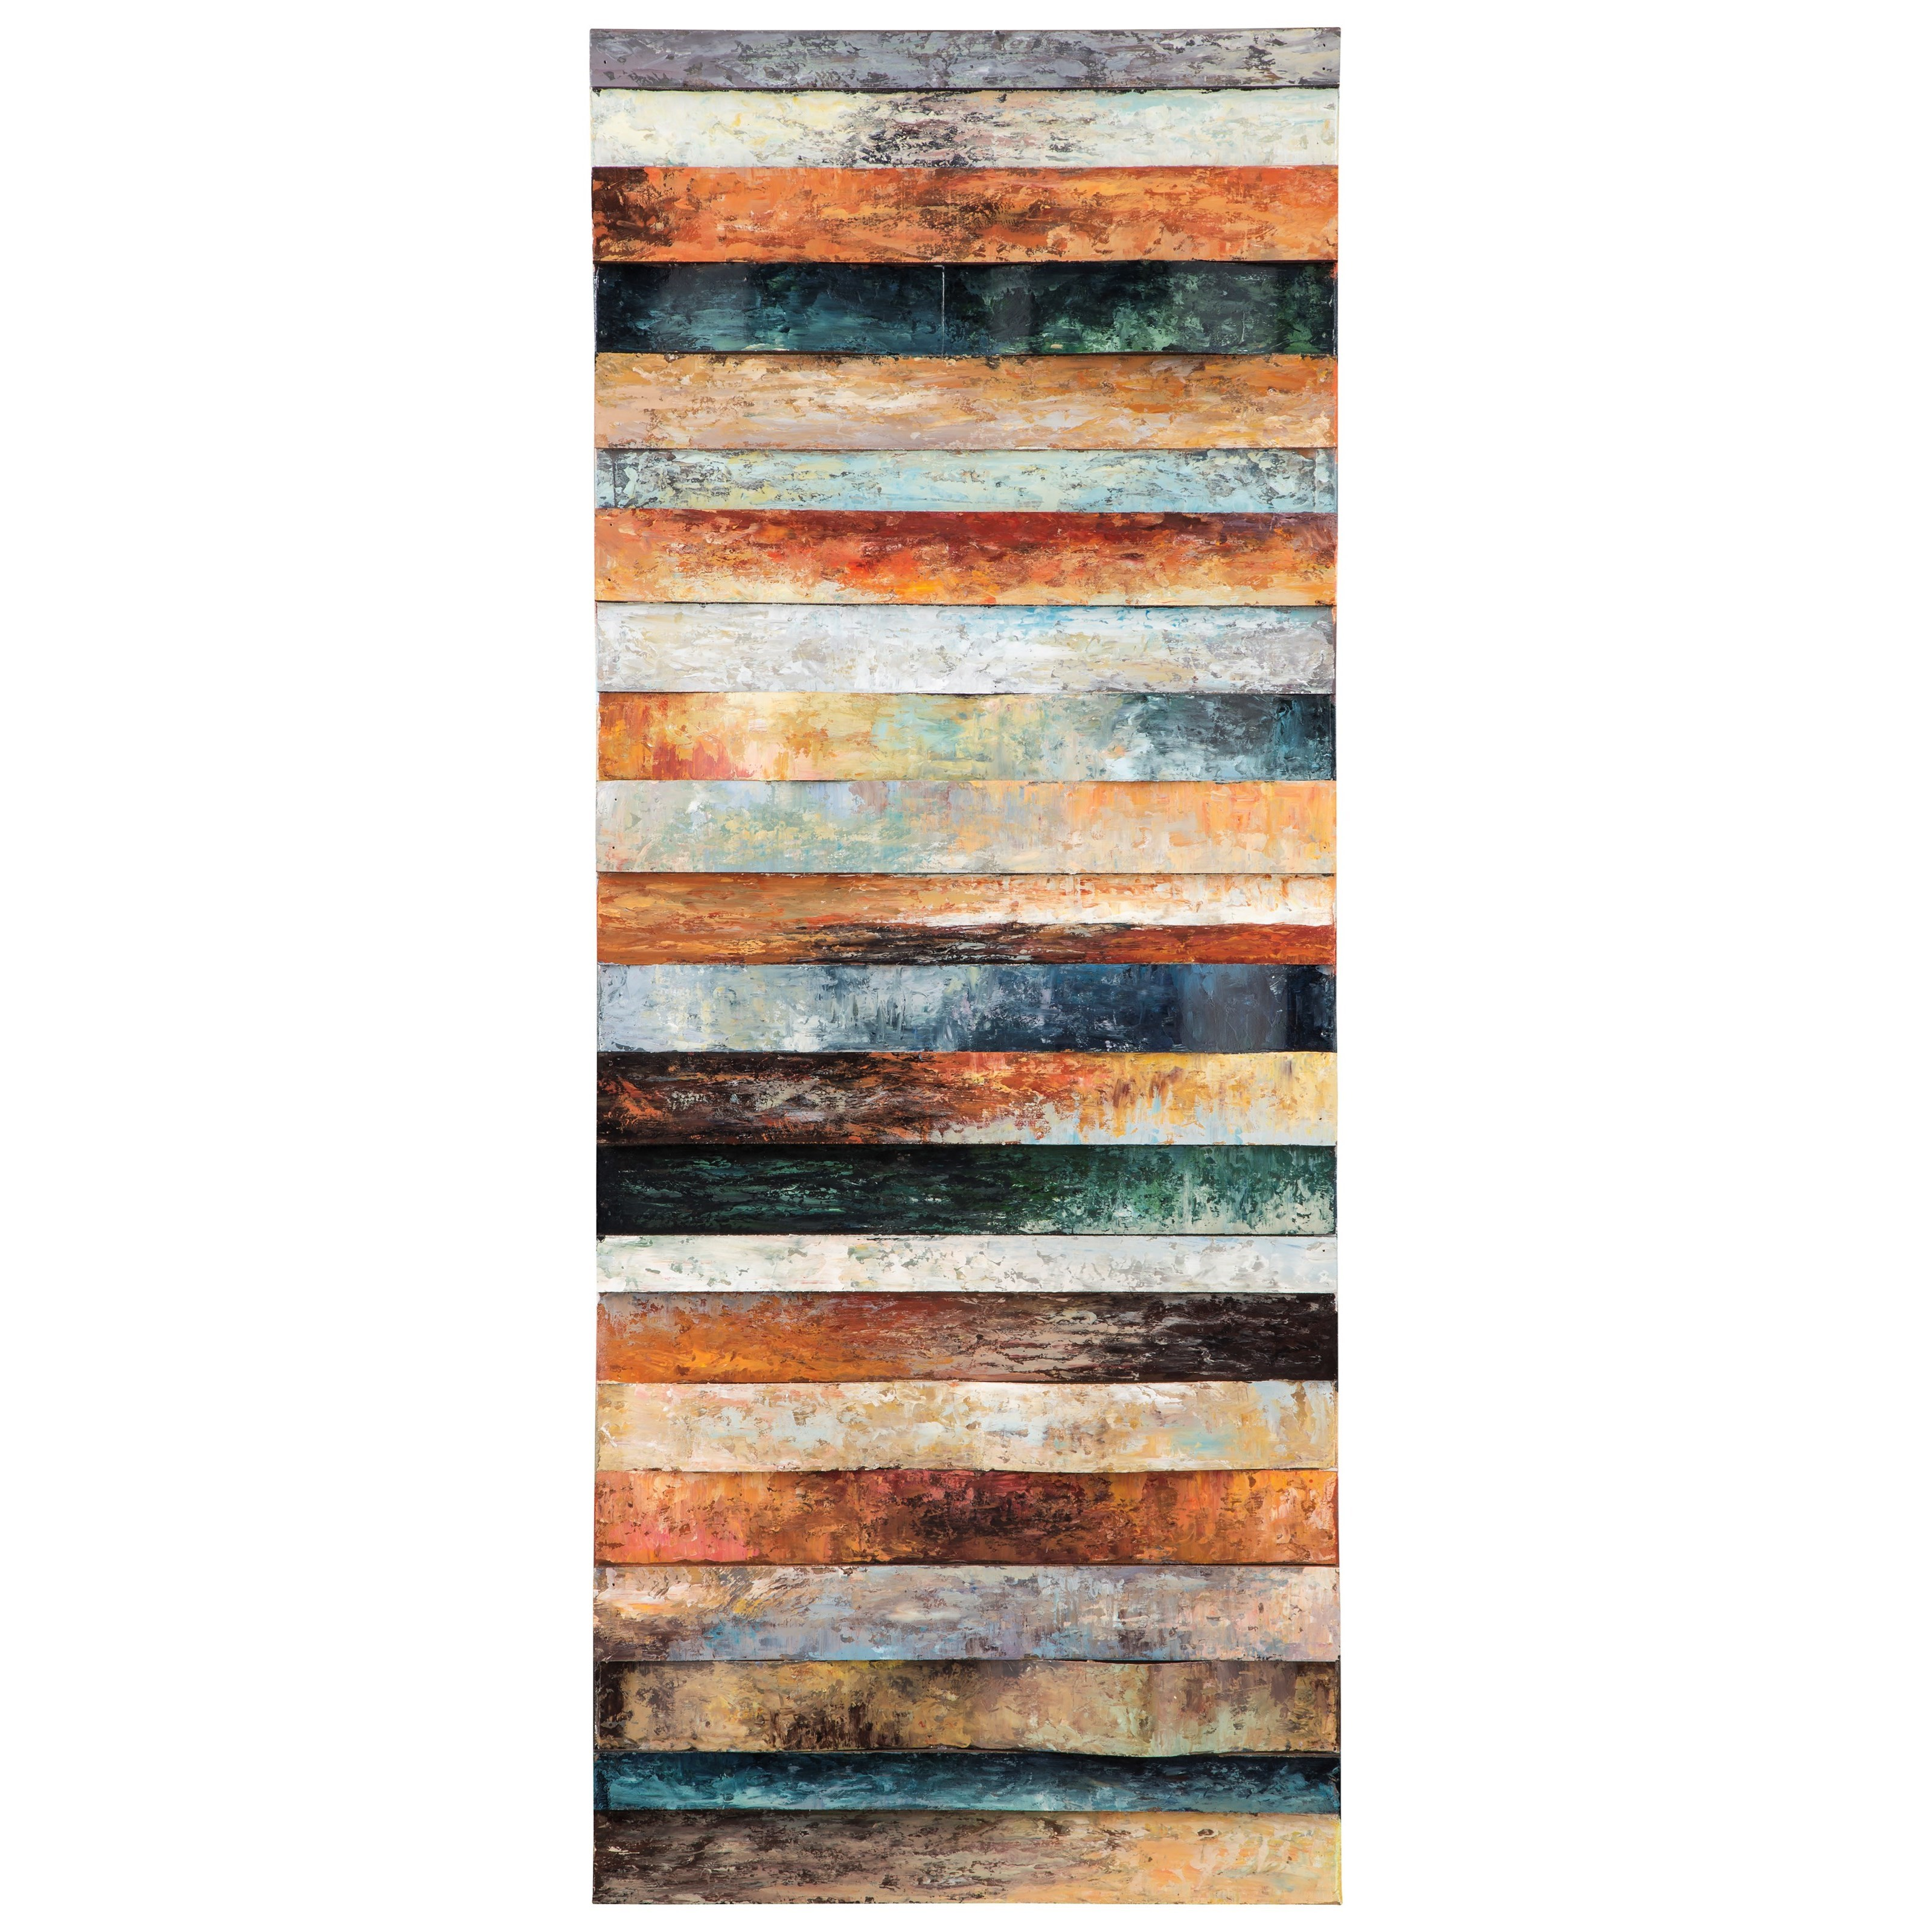 Signature Design by Ashley Wall Art Odiana Multi Wall Decor - Item Number: A8000189